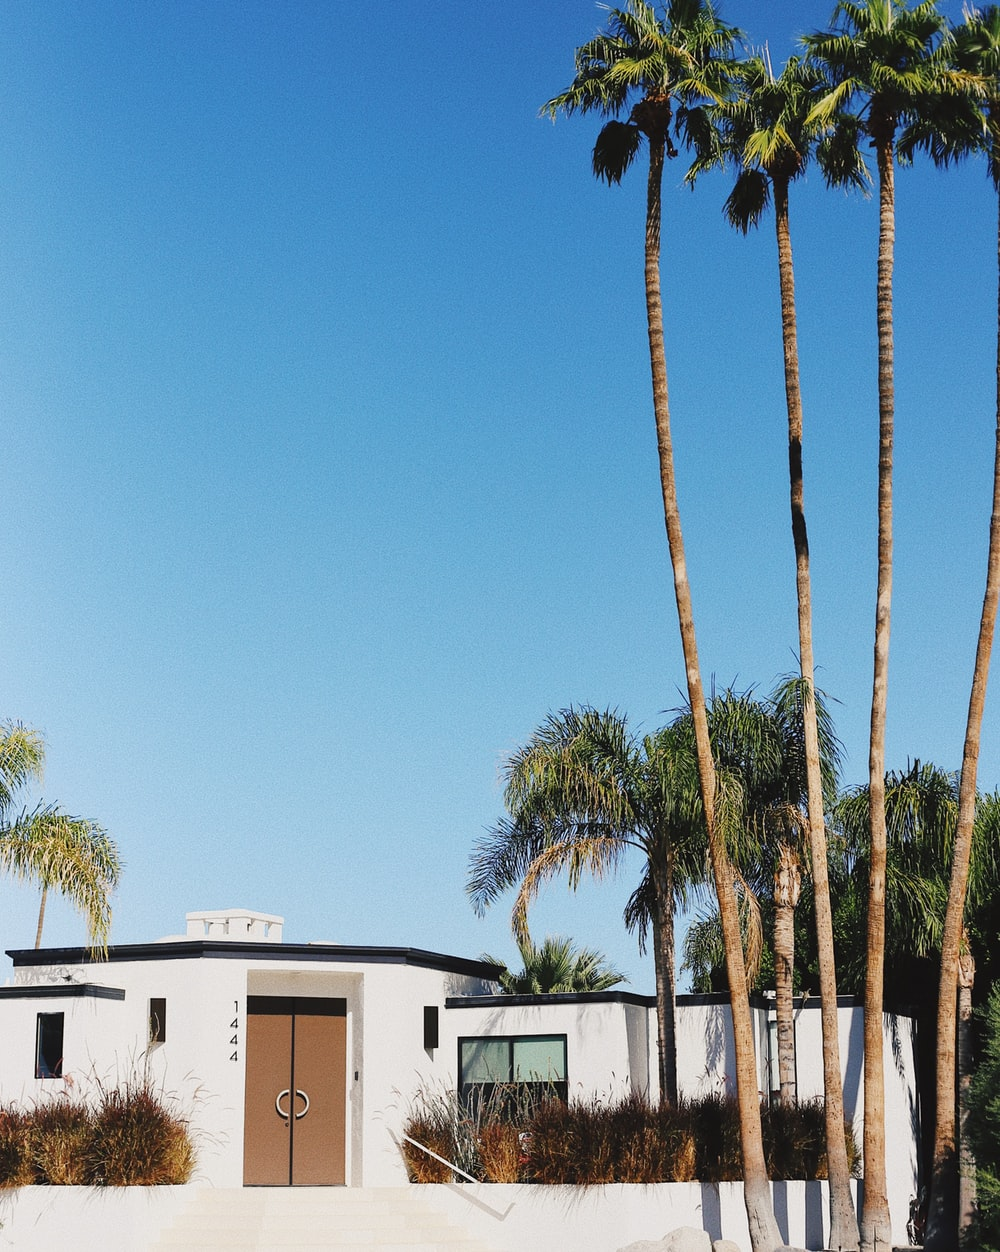 white and brown house near palm trees under blue sky during daytime